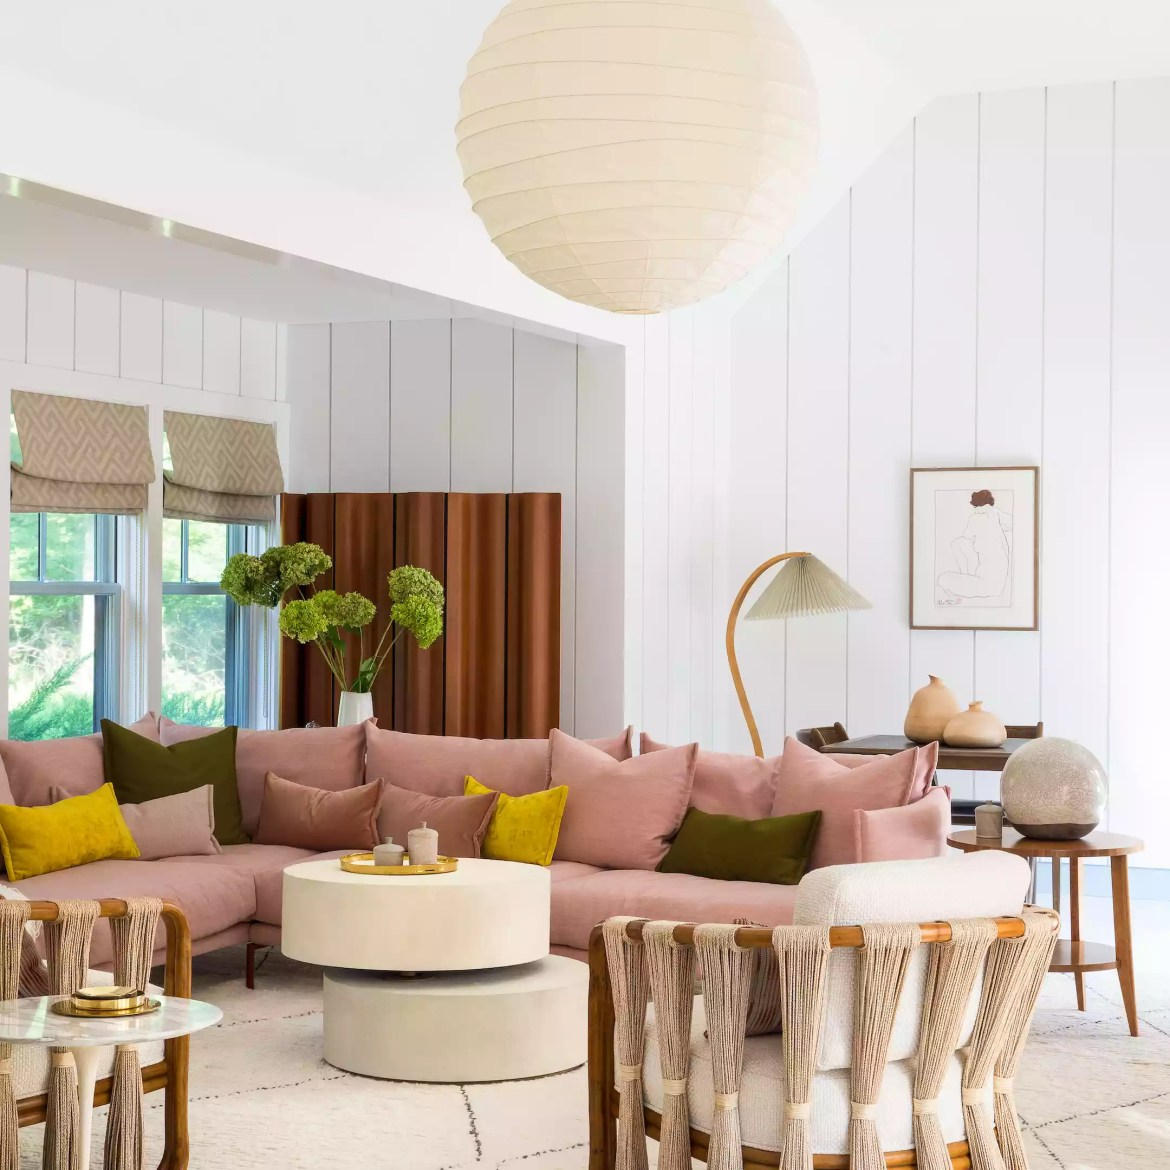 Living room with large lantern chandelier and pink sofa.